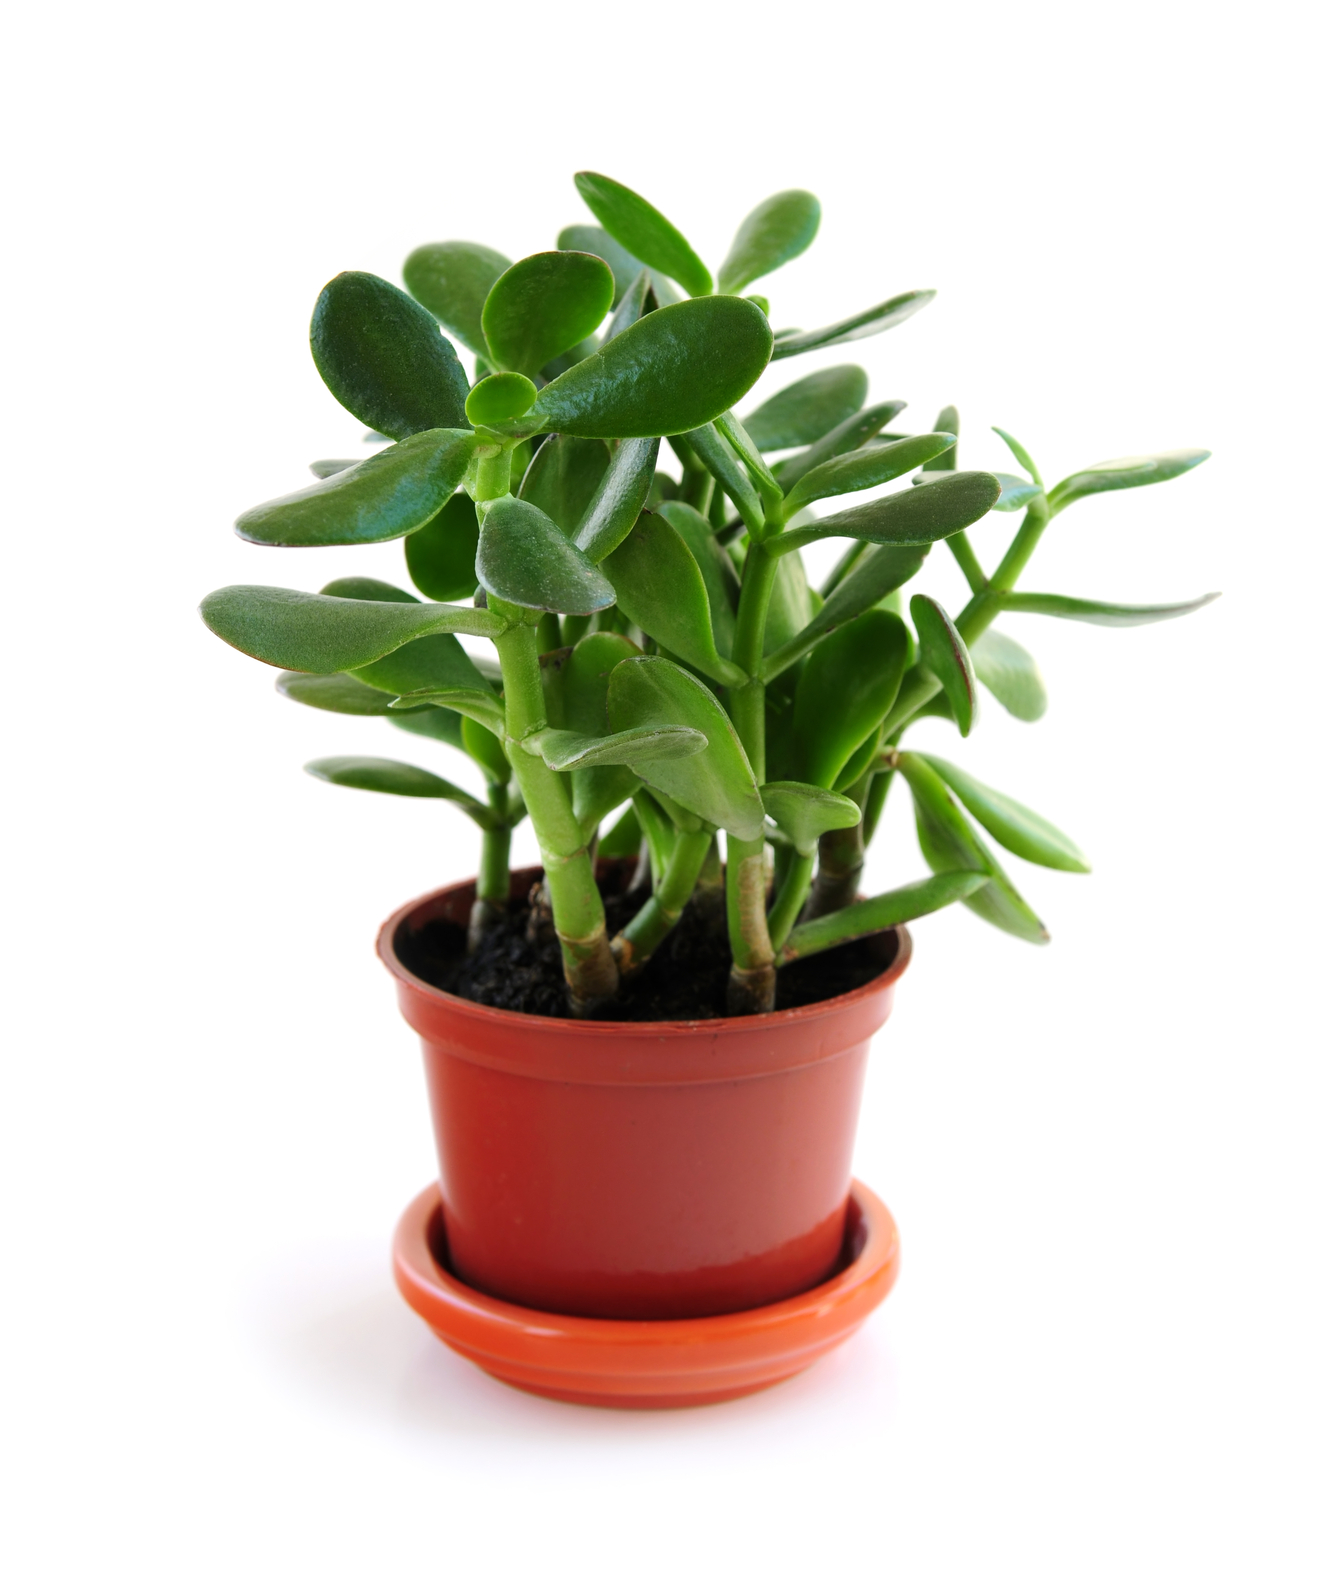 Small Household Plants Jade Plants How To Plant Grow And Care For Jade Plants